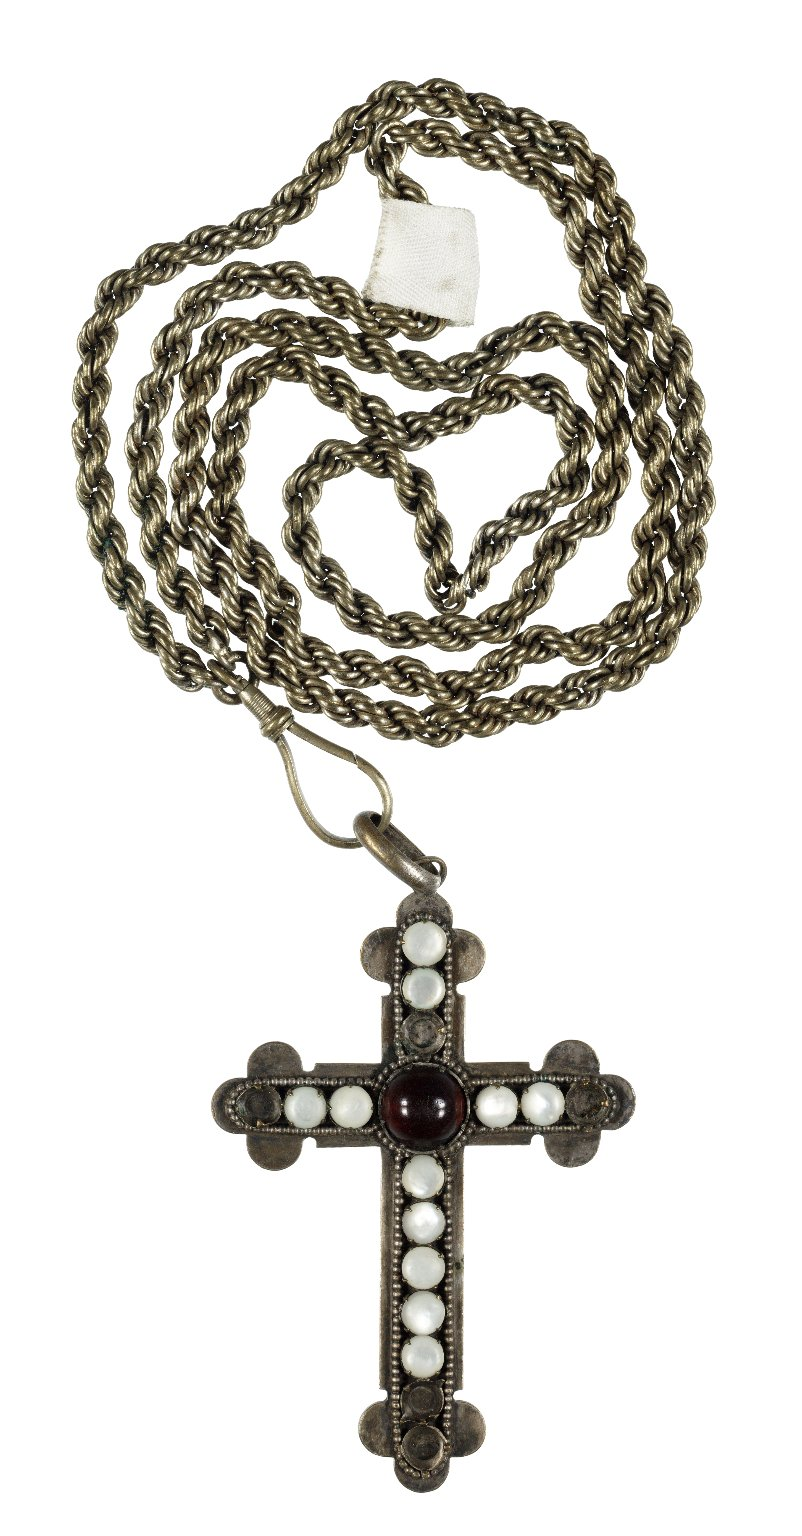 Brass chain and cross with white stones used by Adelaide Neilson in As You Like It